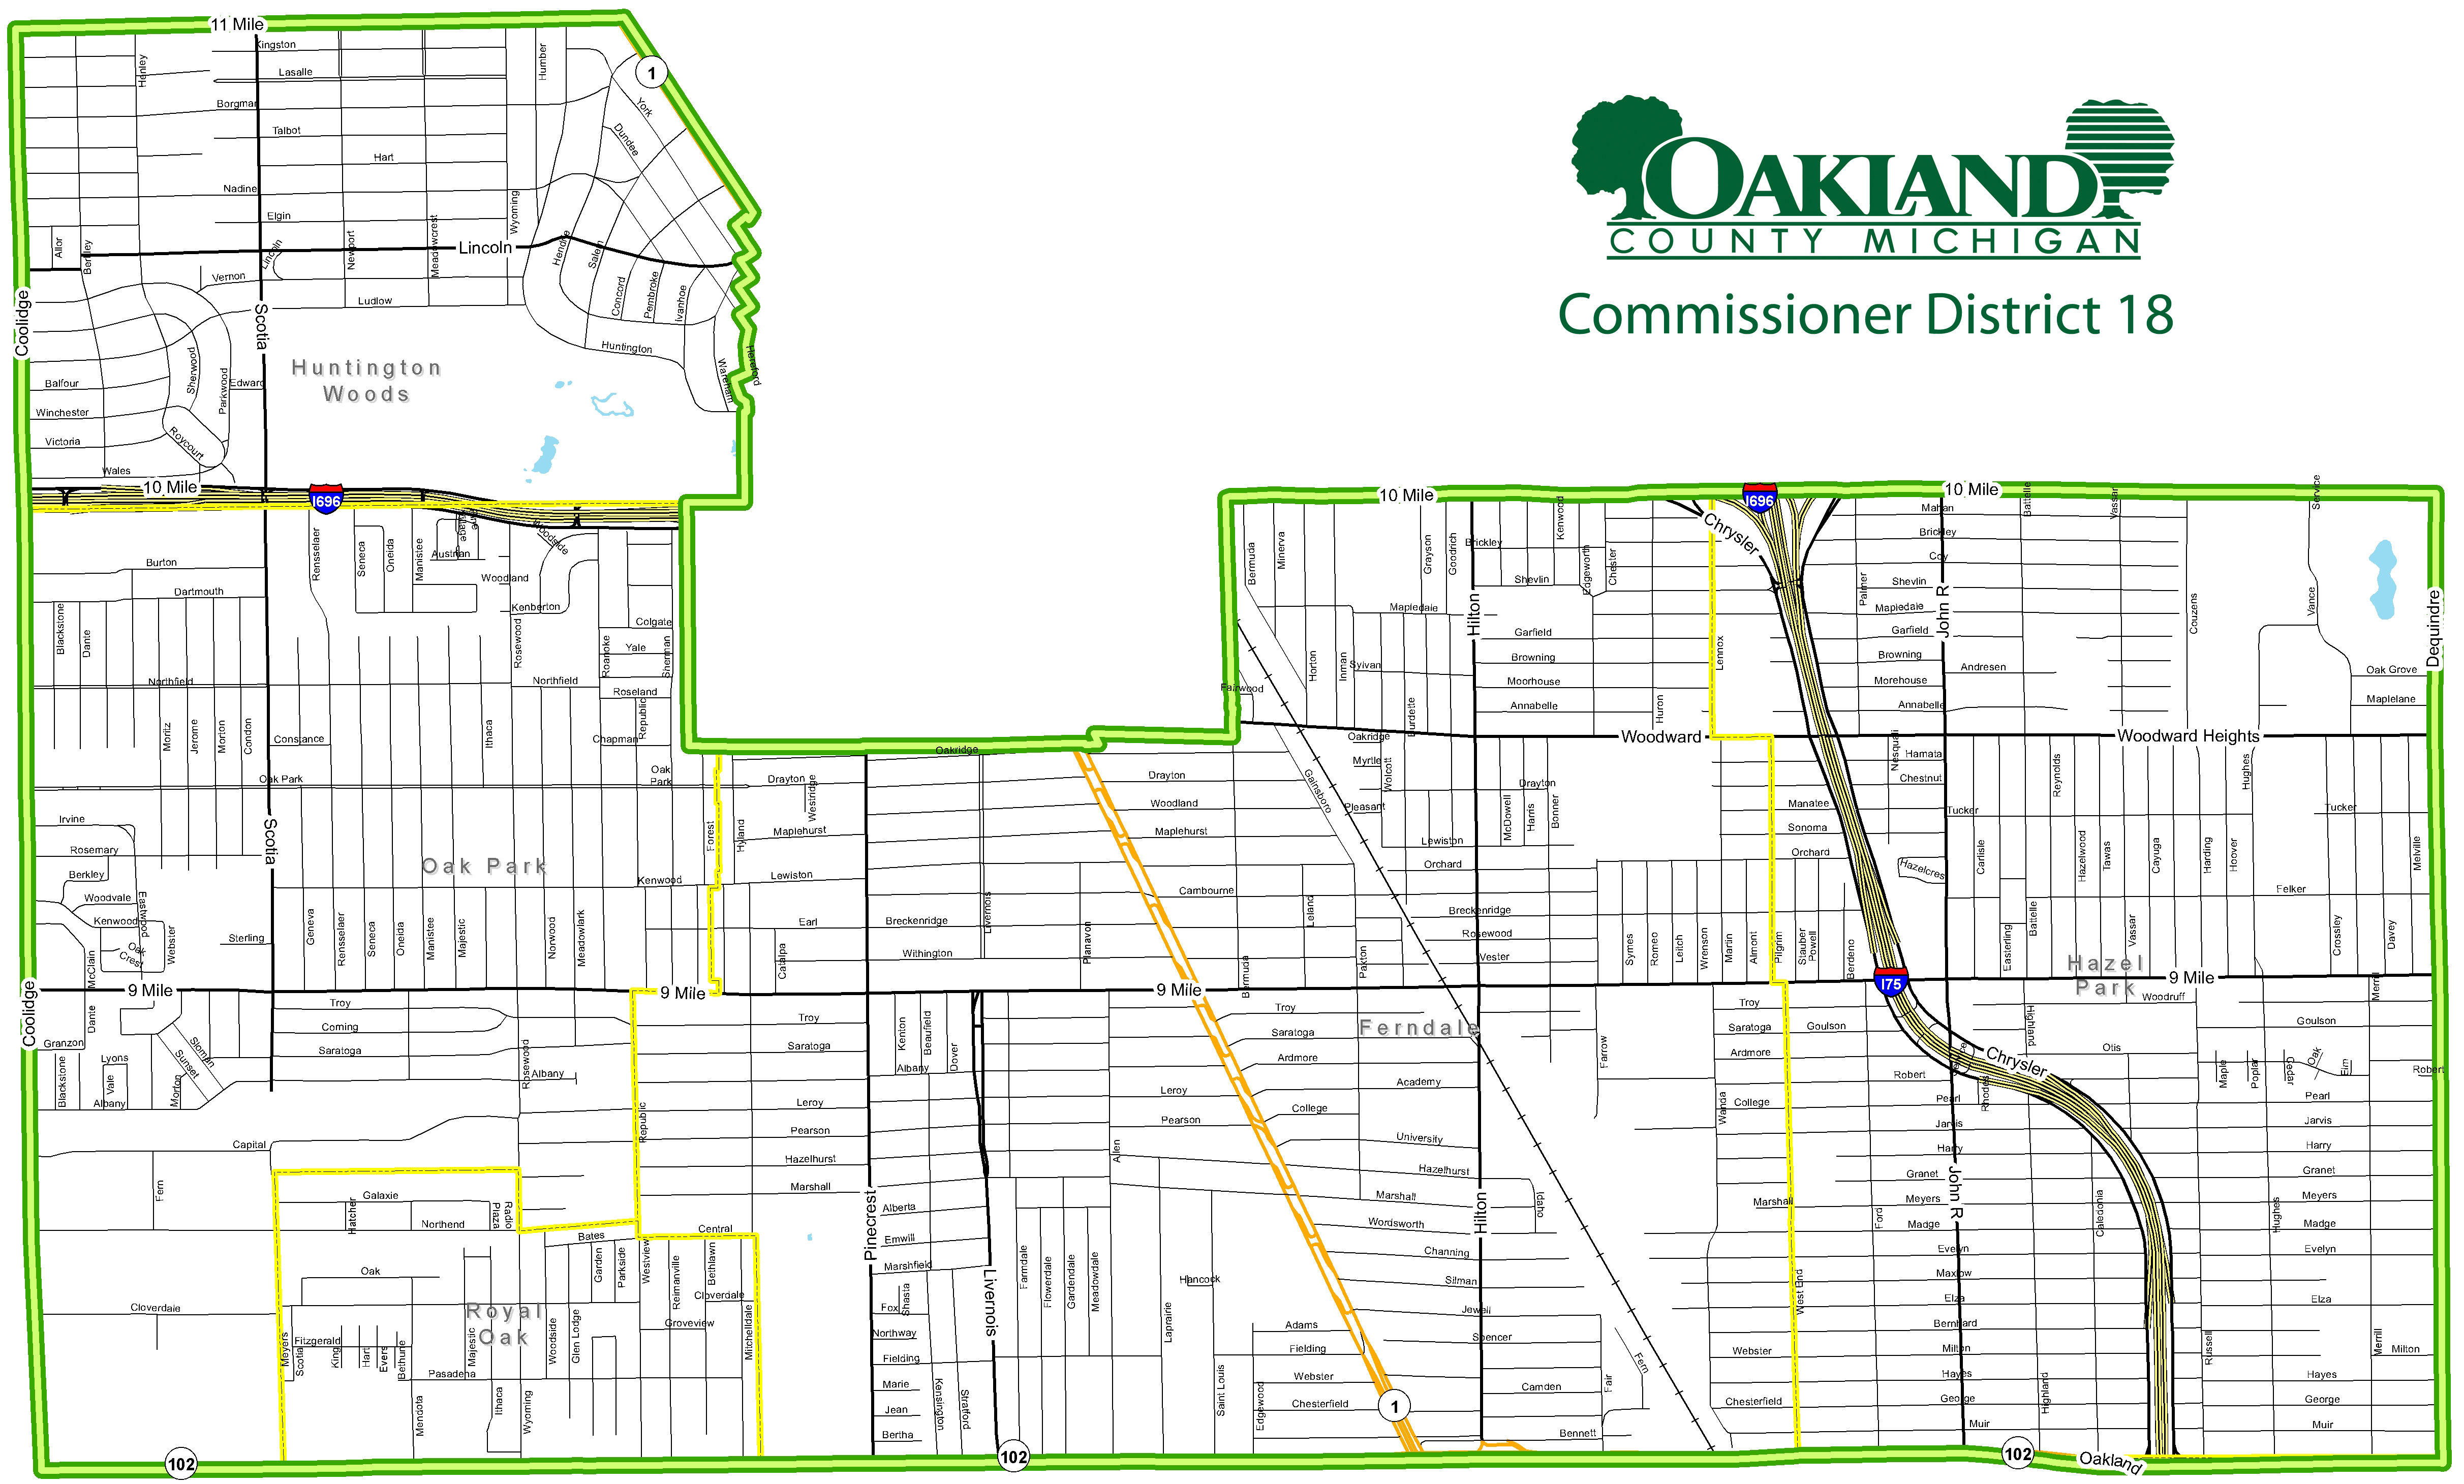 Street map of Commissioner District 18